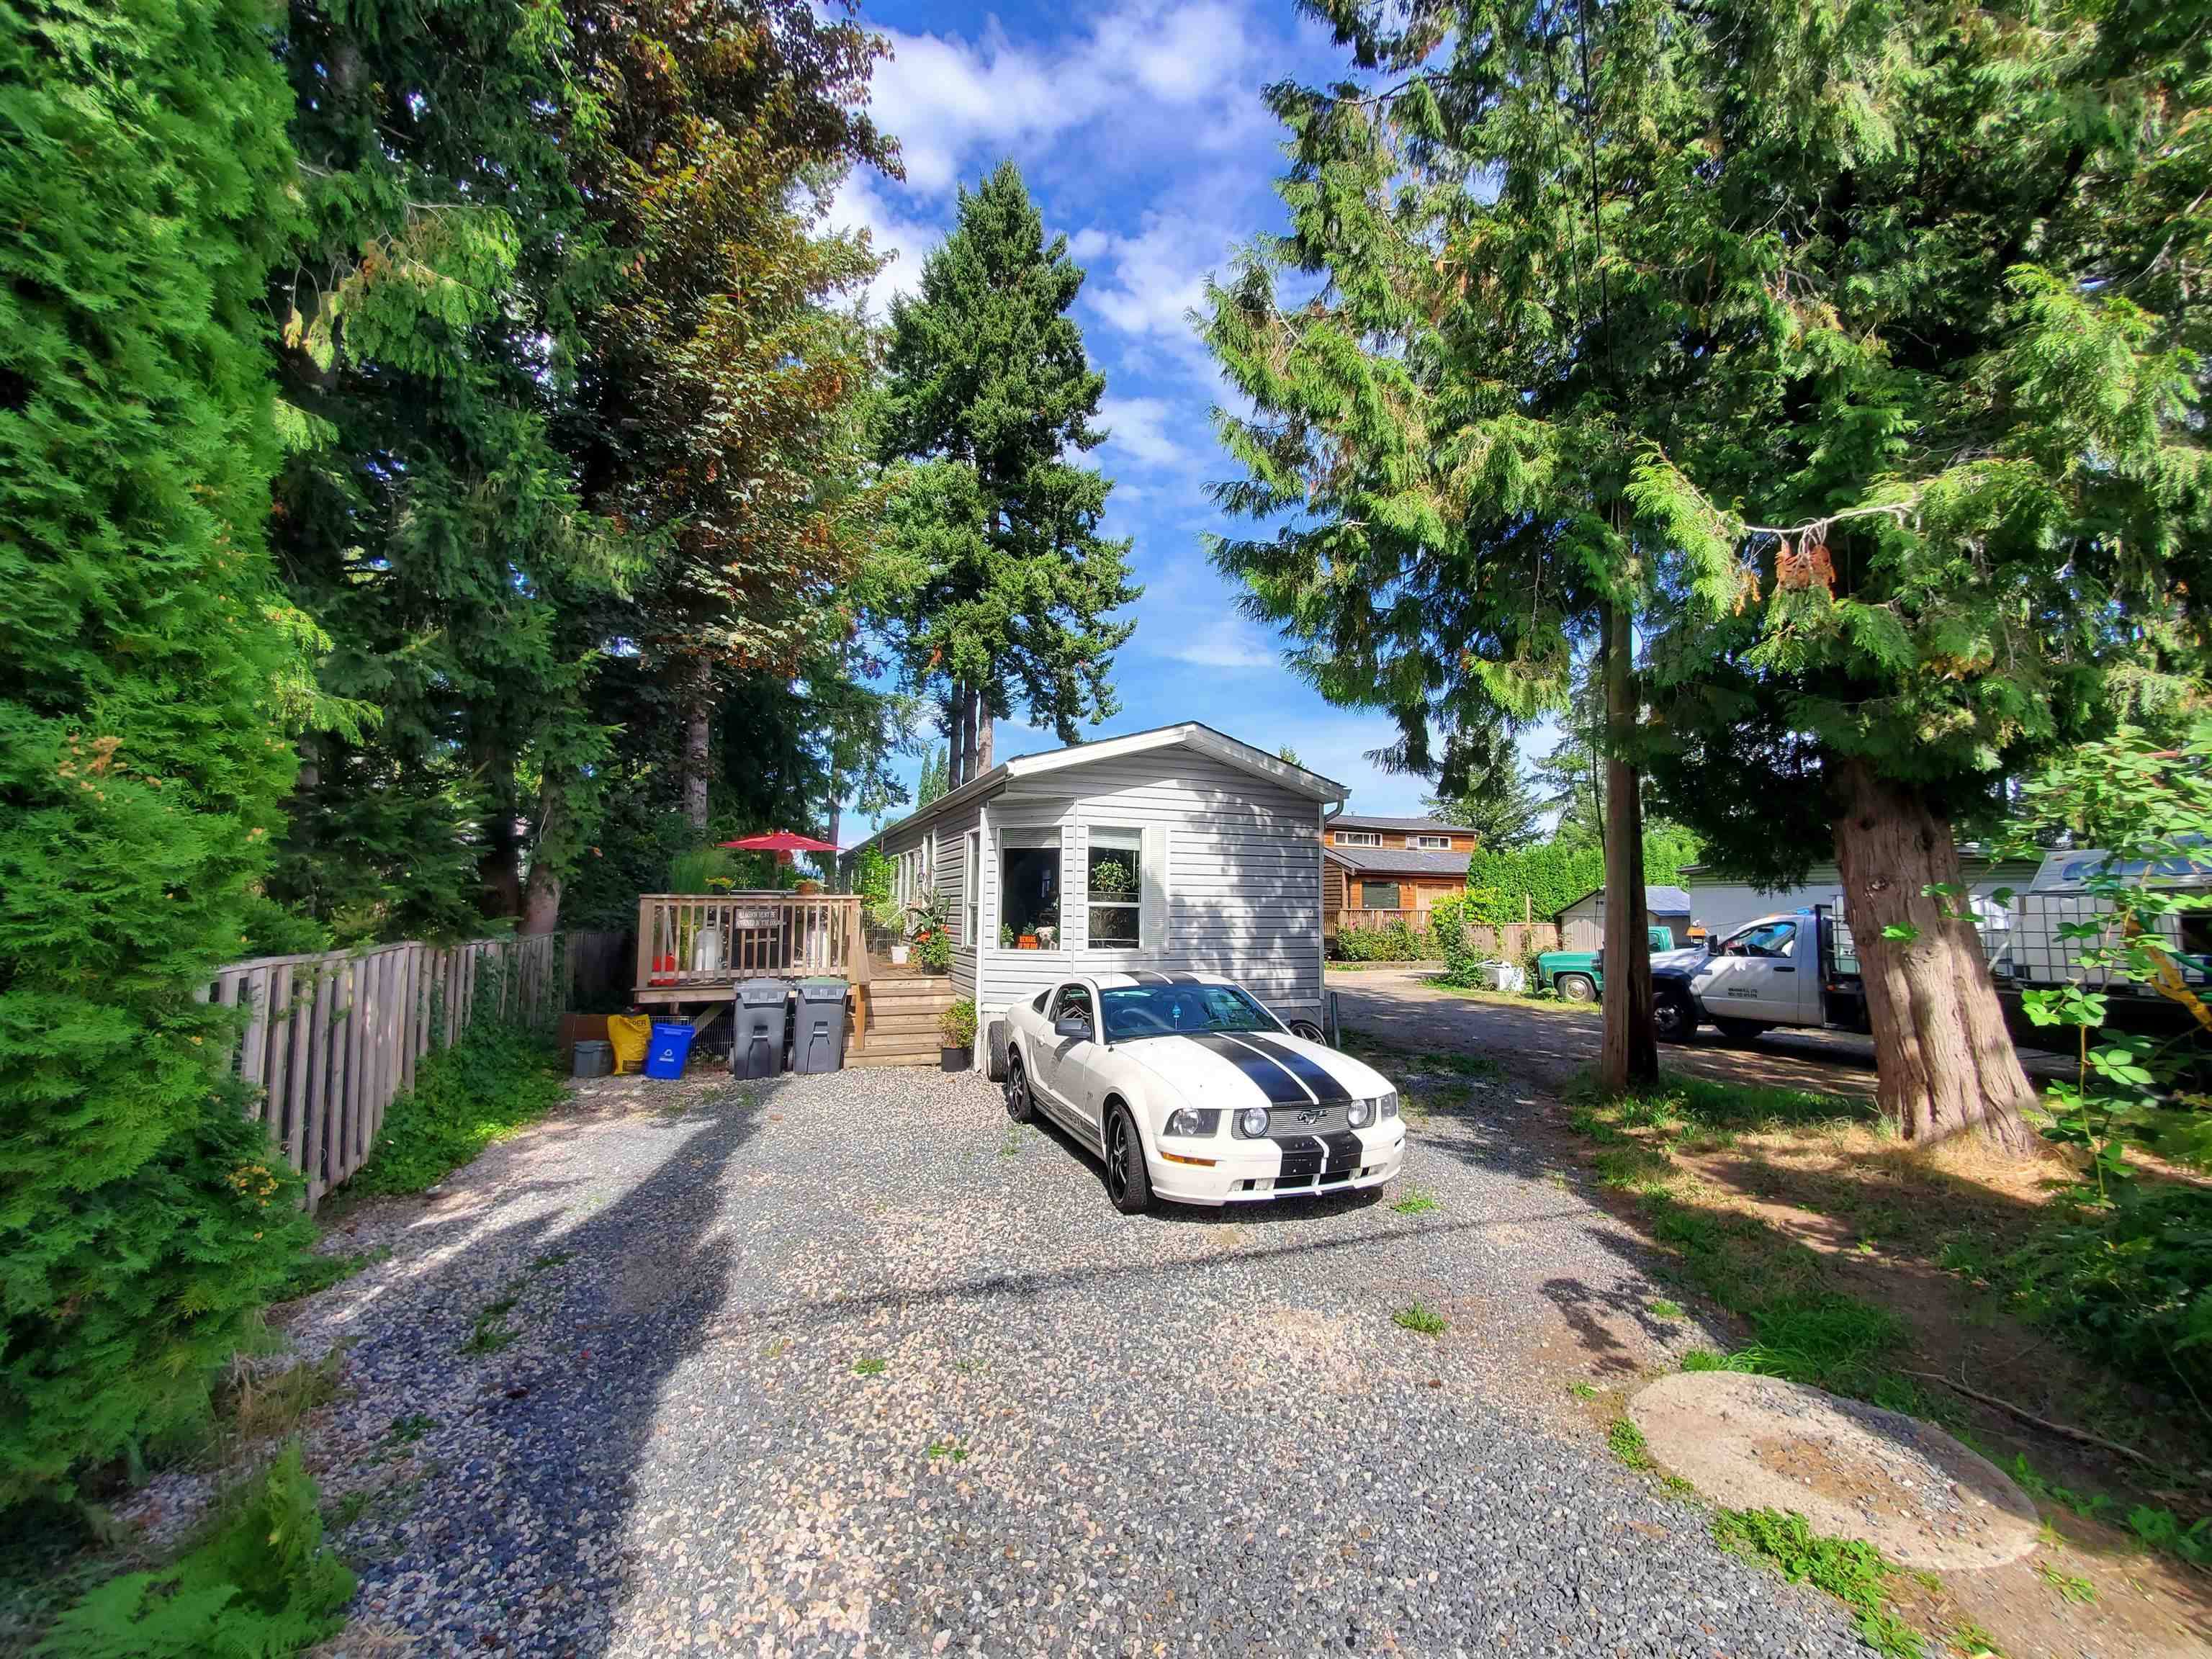 20265 98 AVENUE - Walnut Grove Manufactured with Land for sale, 2 Bedrooms (R2616209) - #1